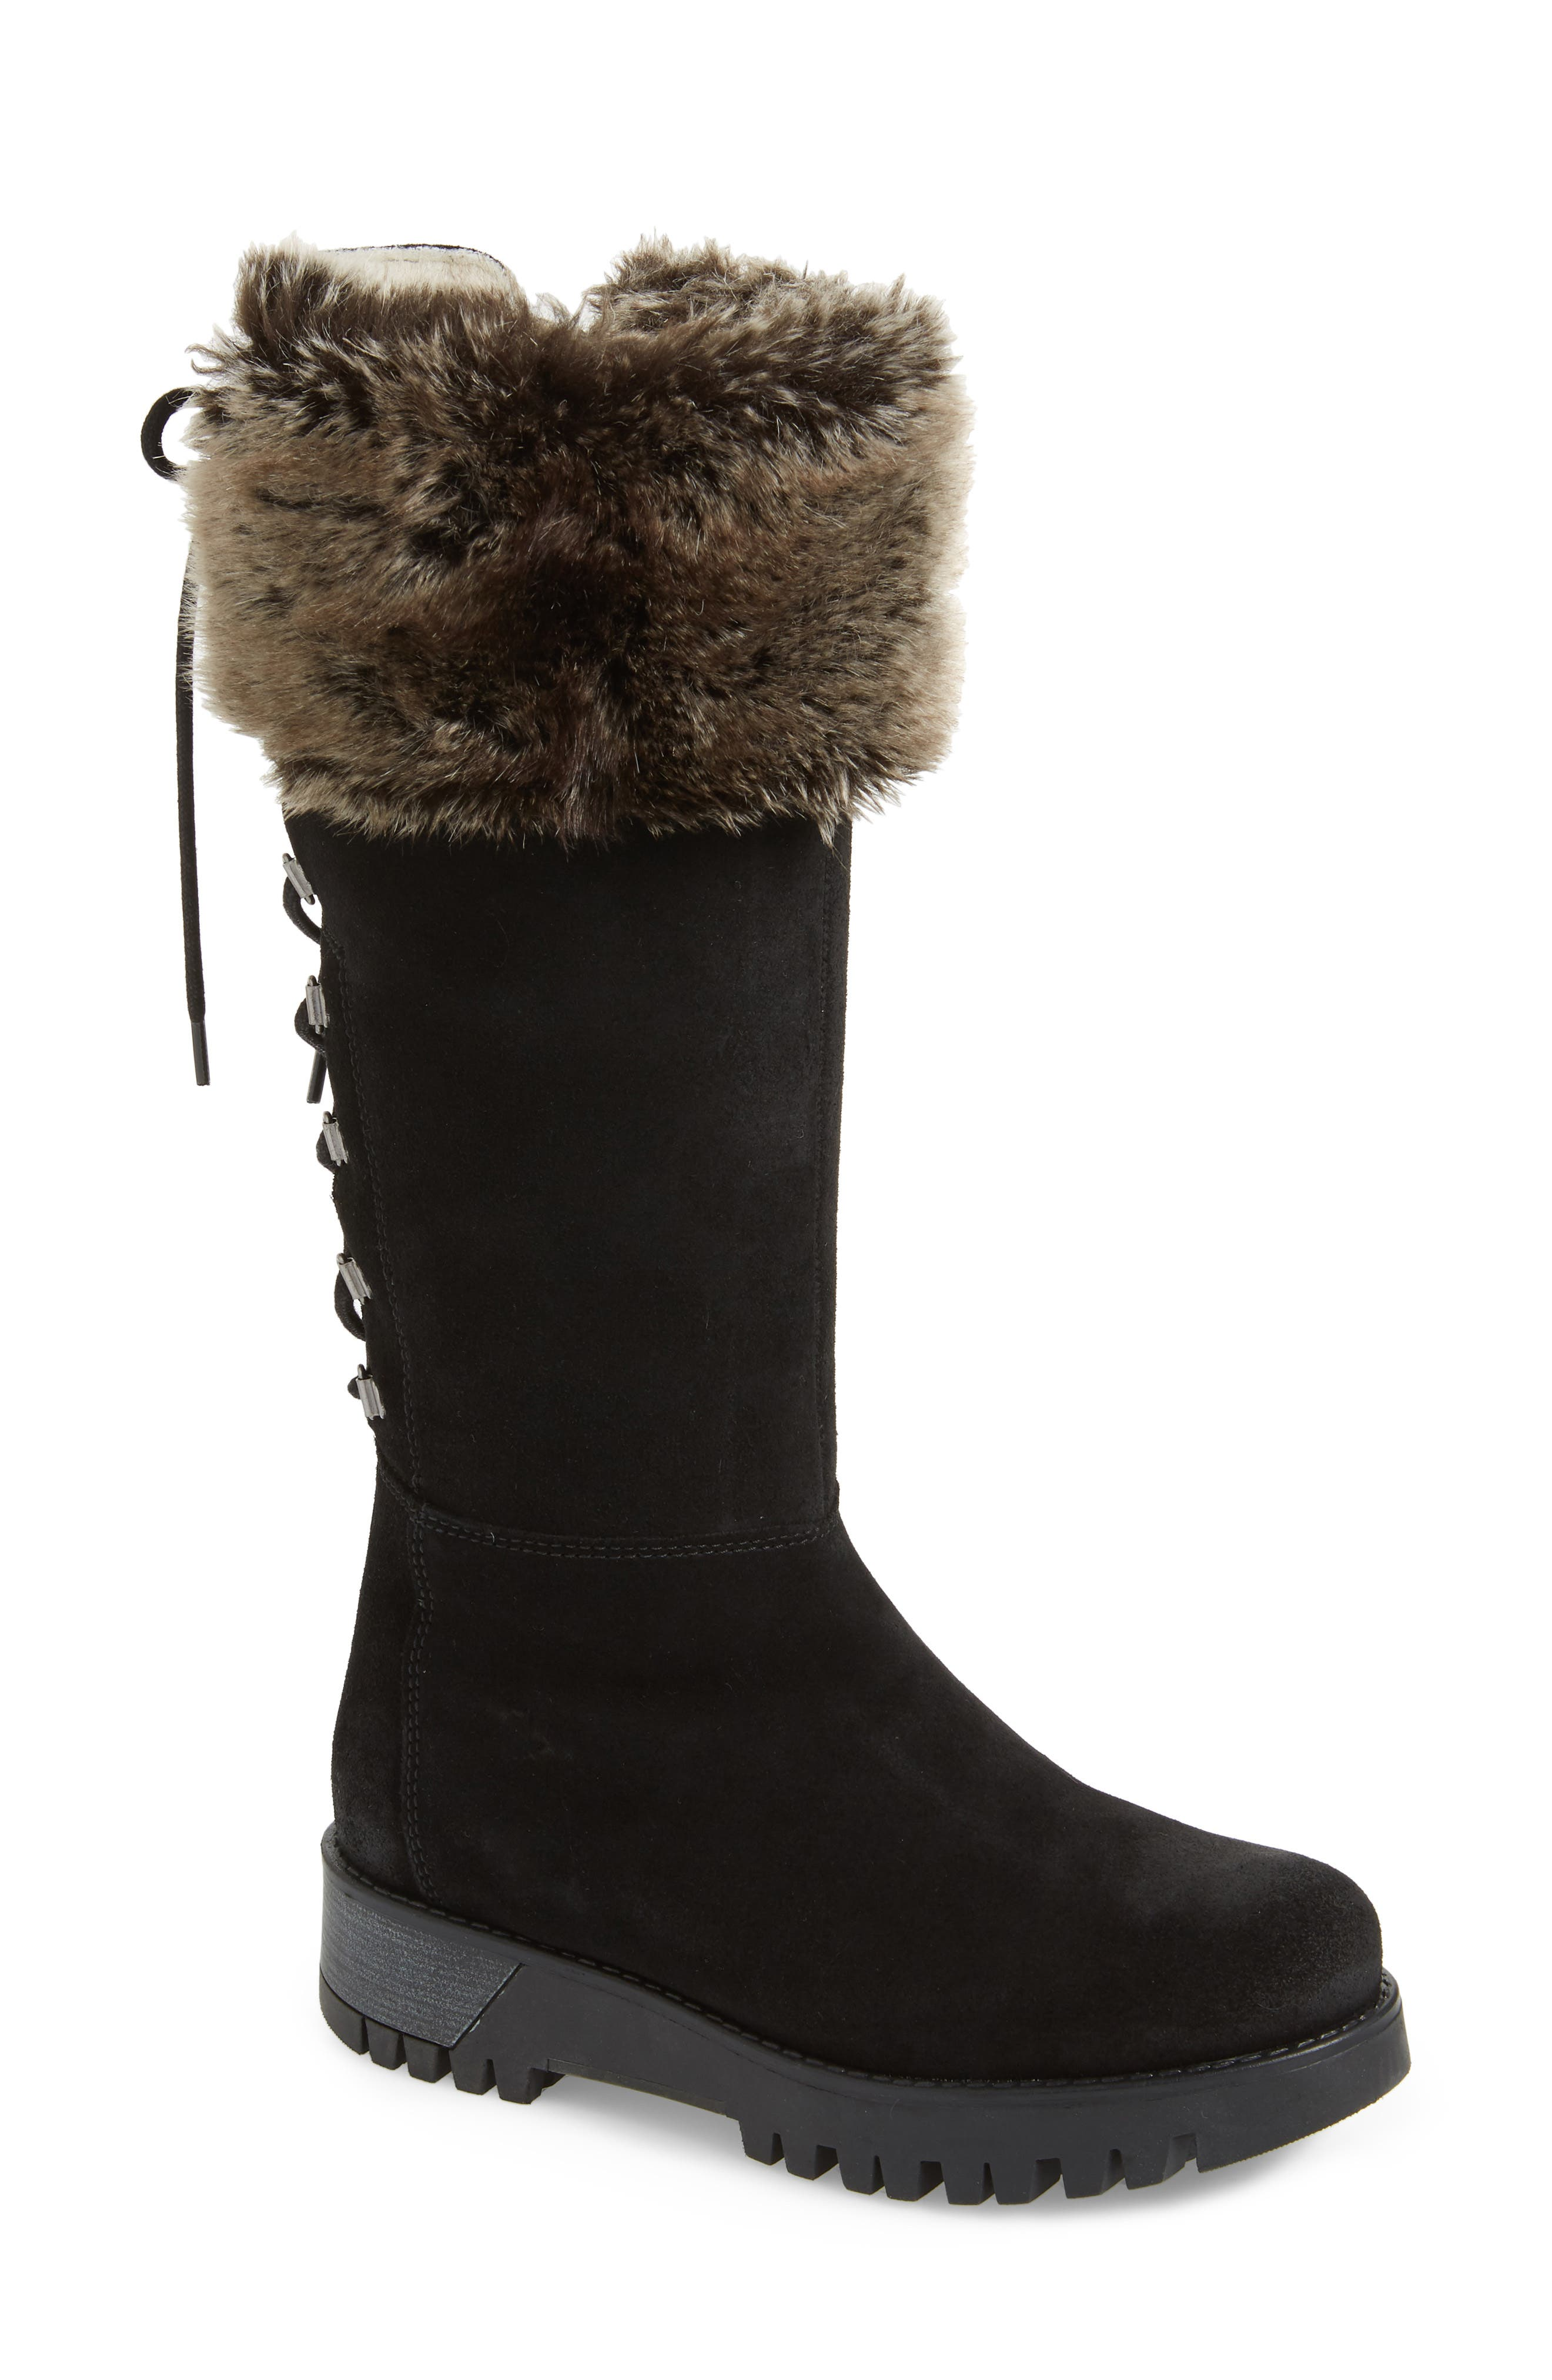 BOS. & CO. Graham Waterproof Winter Boot with Faux Fur Cuff, Main, color, BLACK SUEDE